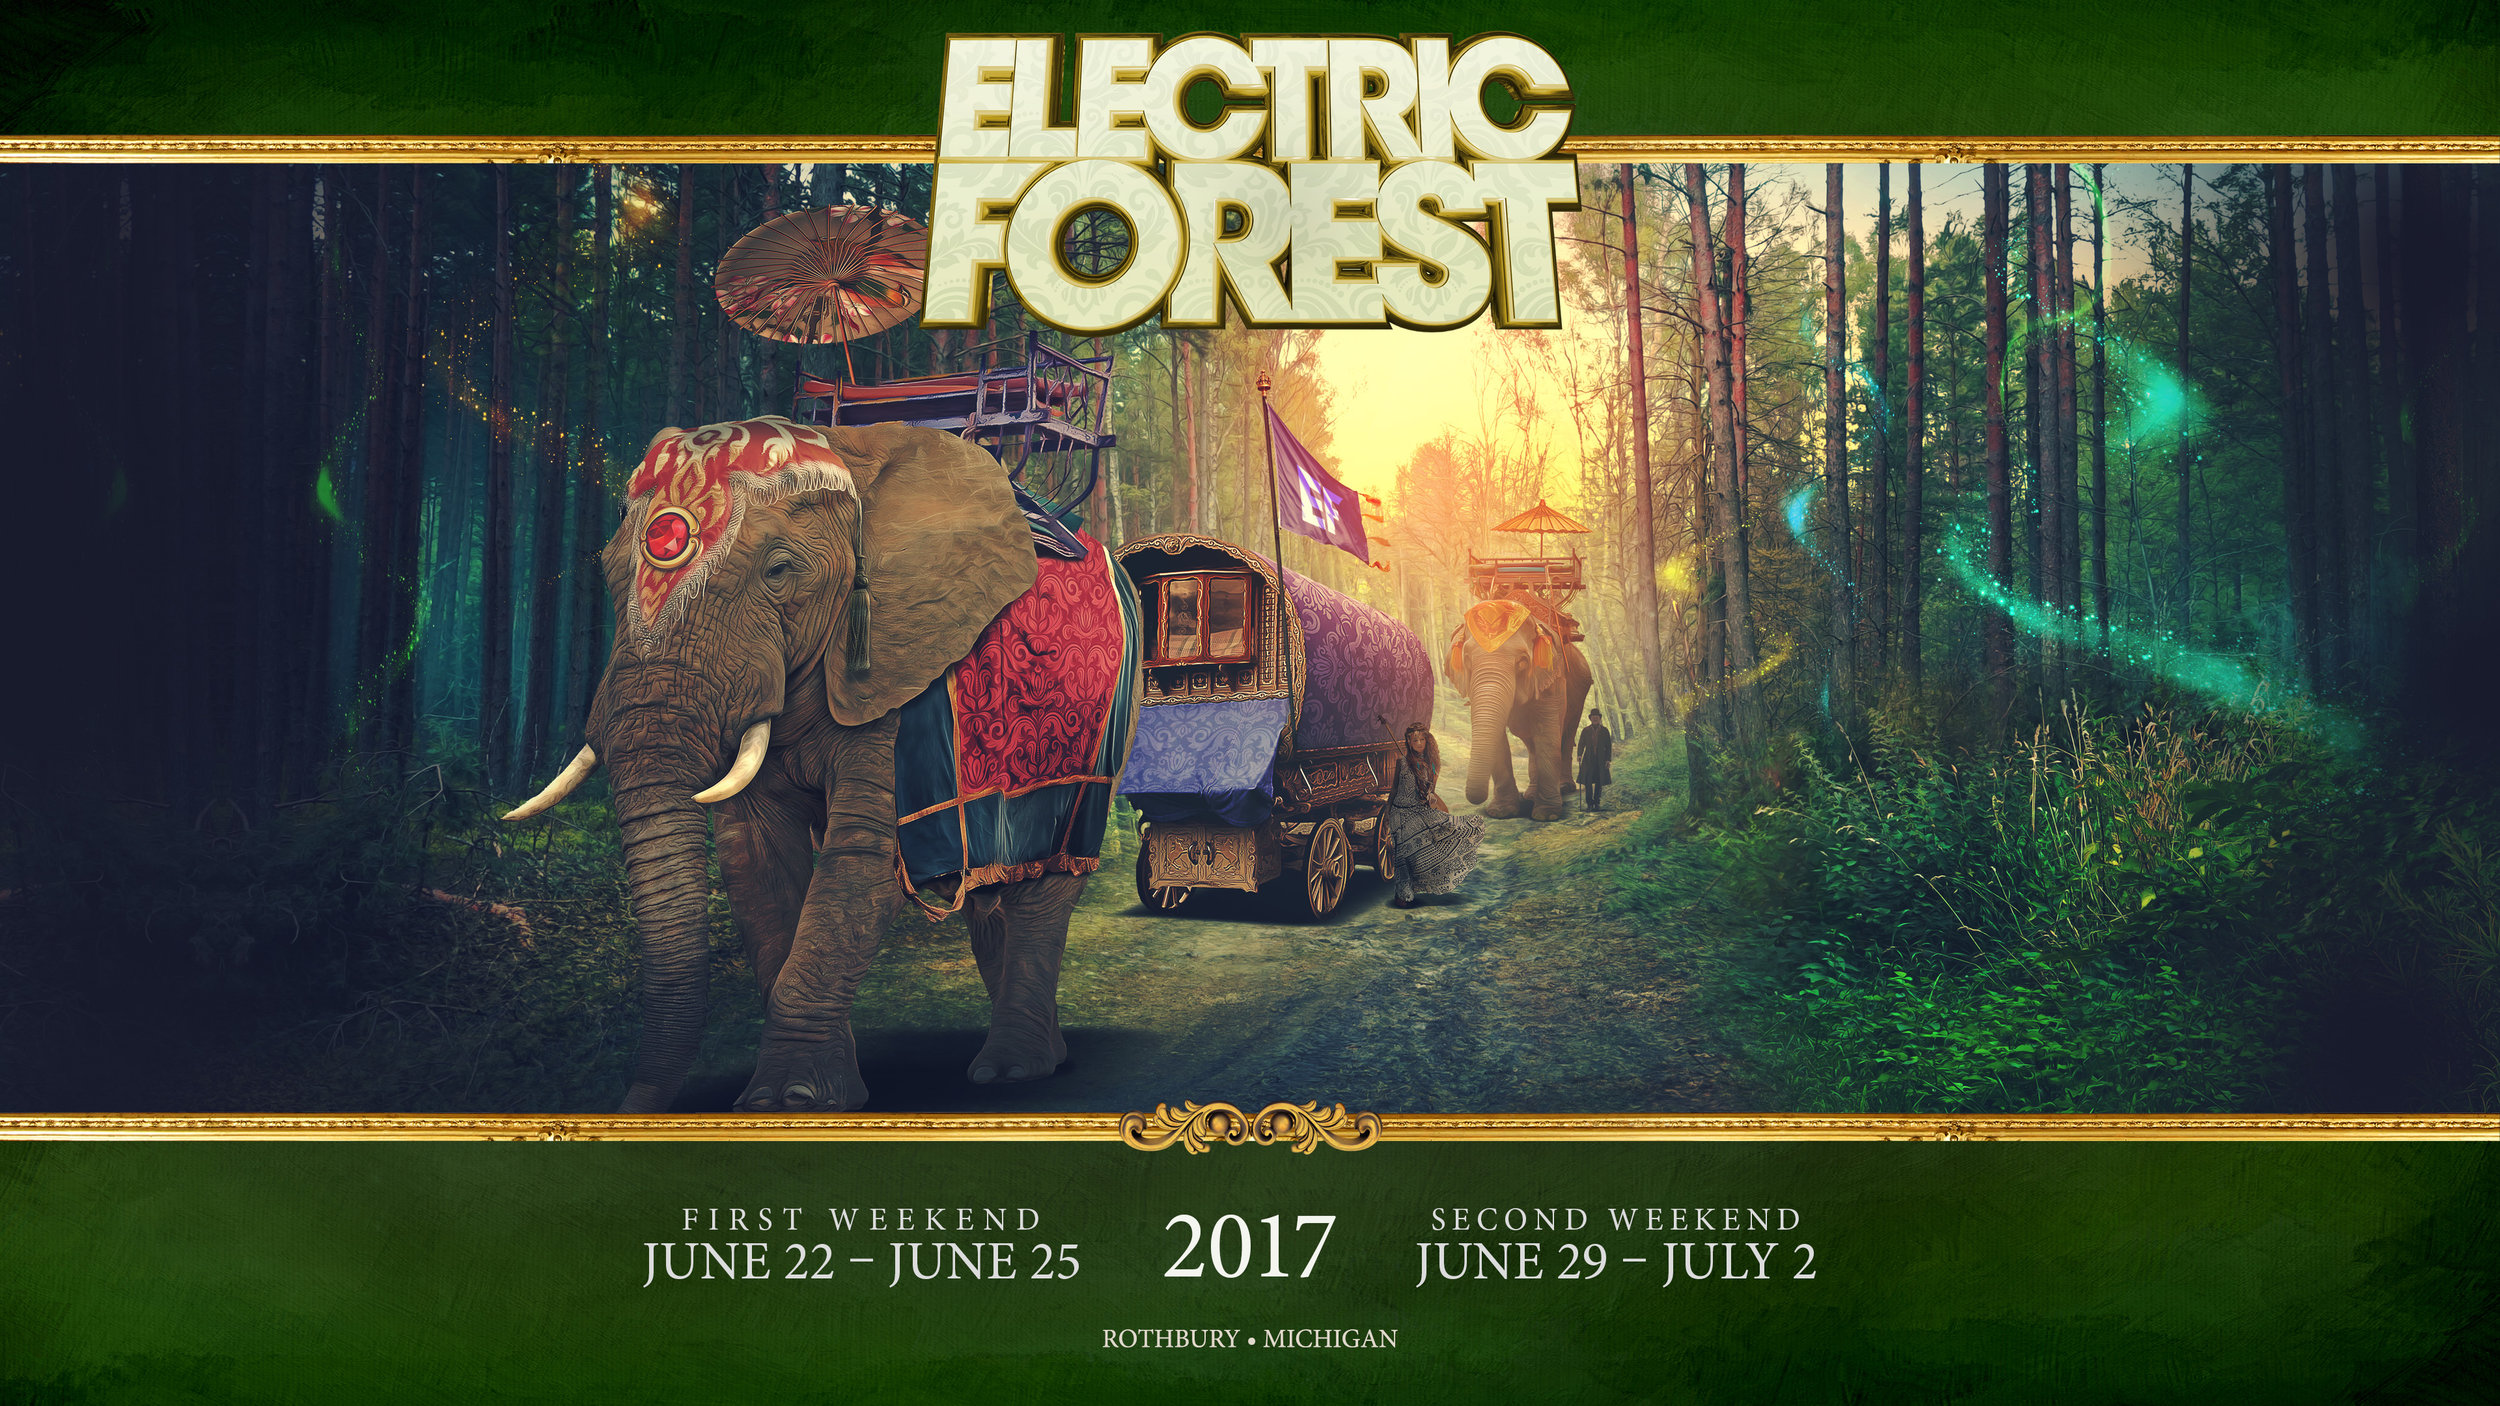 EF2017_MainArt_3840x2160 copy.jpeg